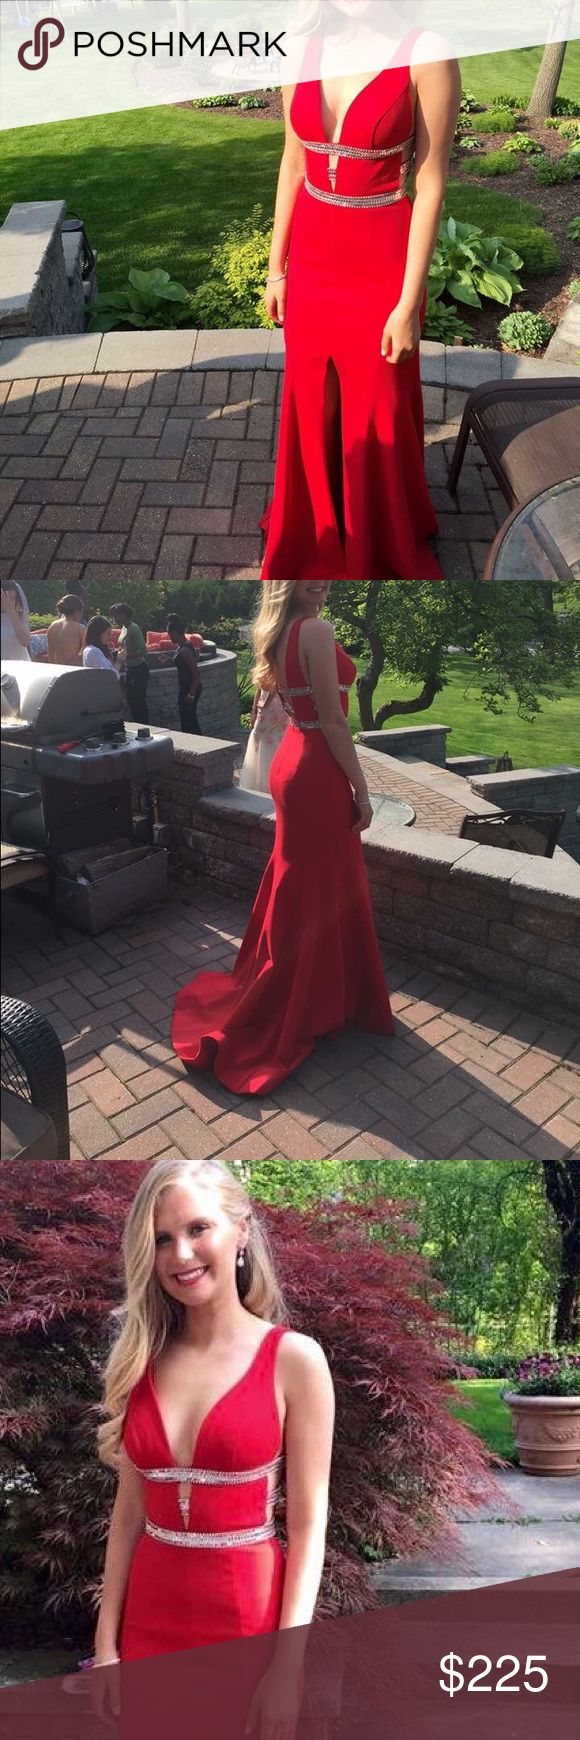 Prom dress Sherri Hill red prom dress, size 2, originally $500 selling for $200!!!! Contact me moore273@umail.iu.edu for questions!! Sherri Hill Dresses Prom